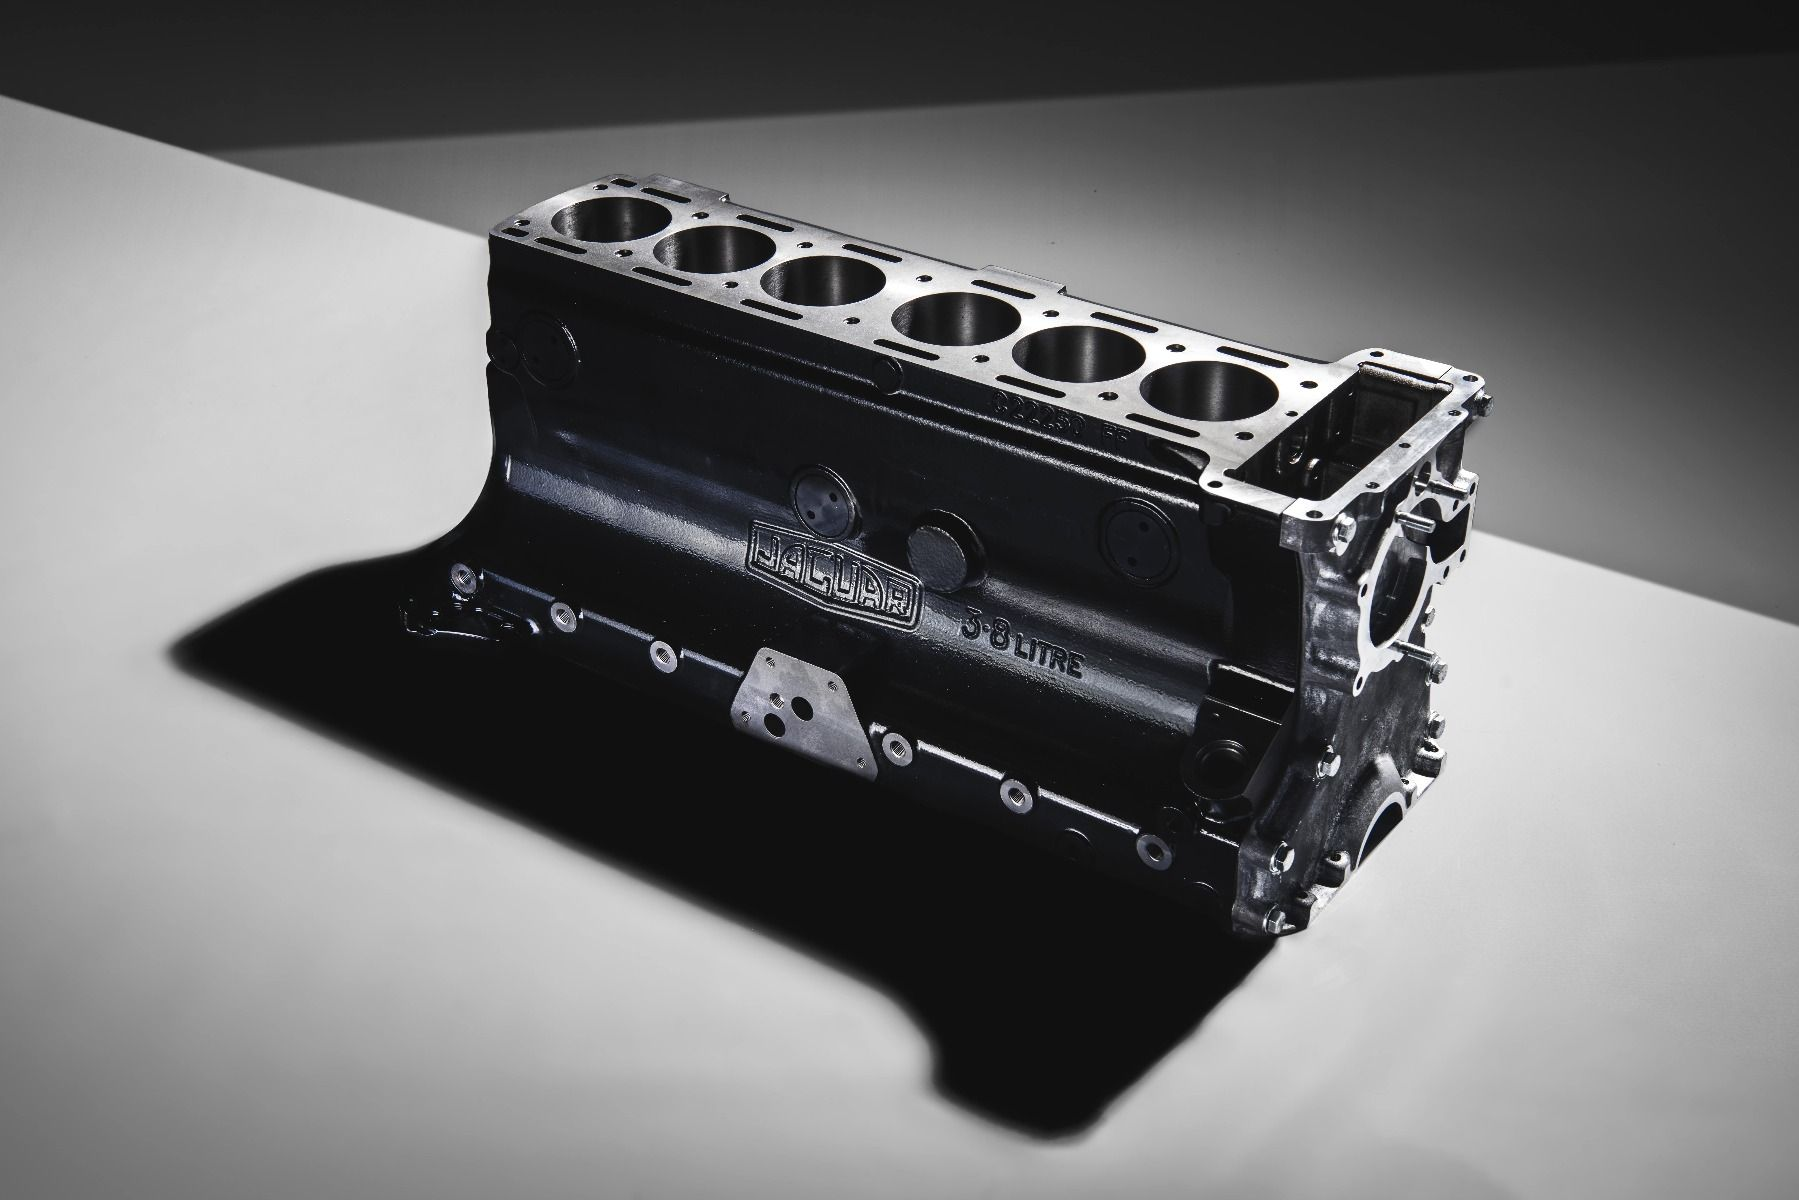 Jaguar will sell you a new XK straight-six engine block